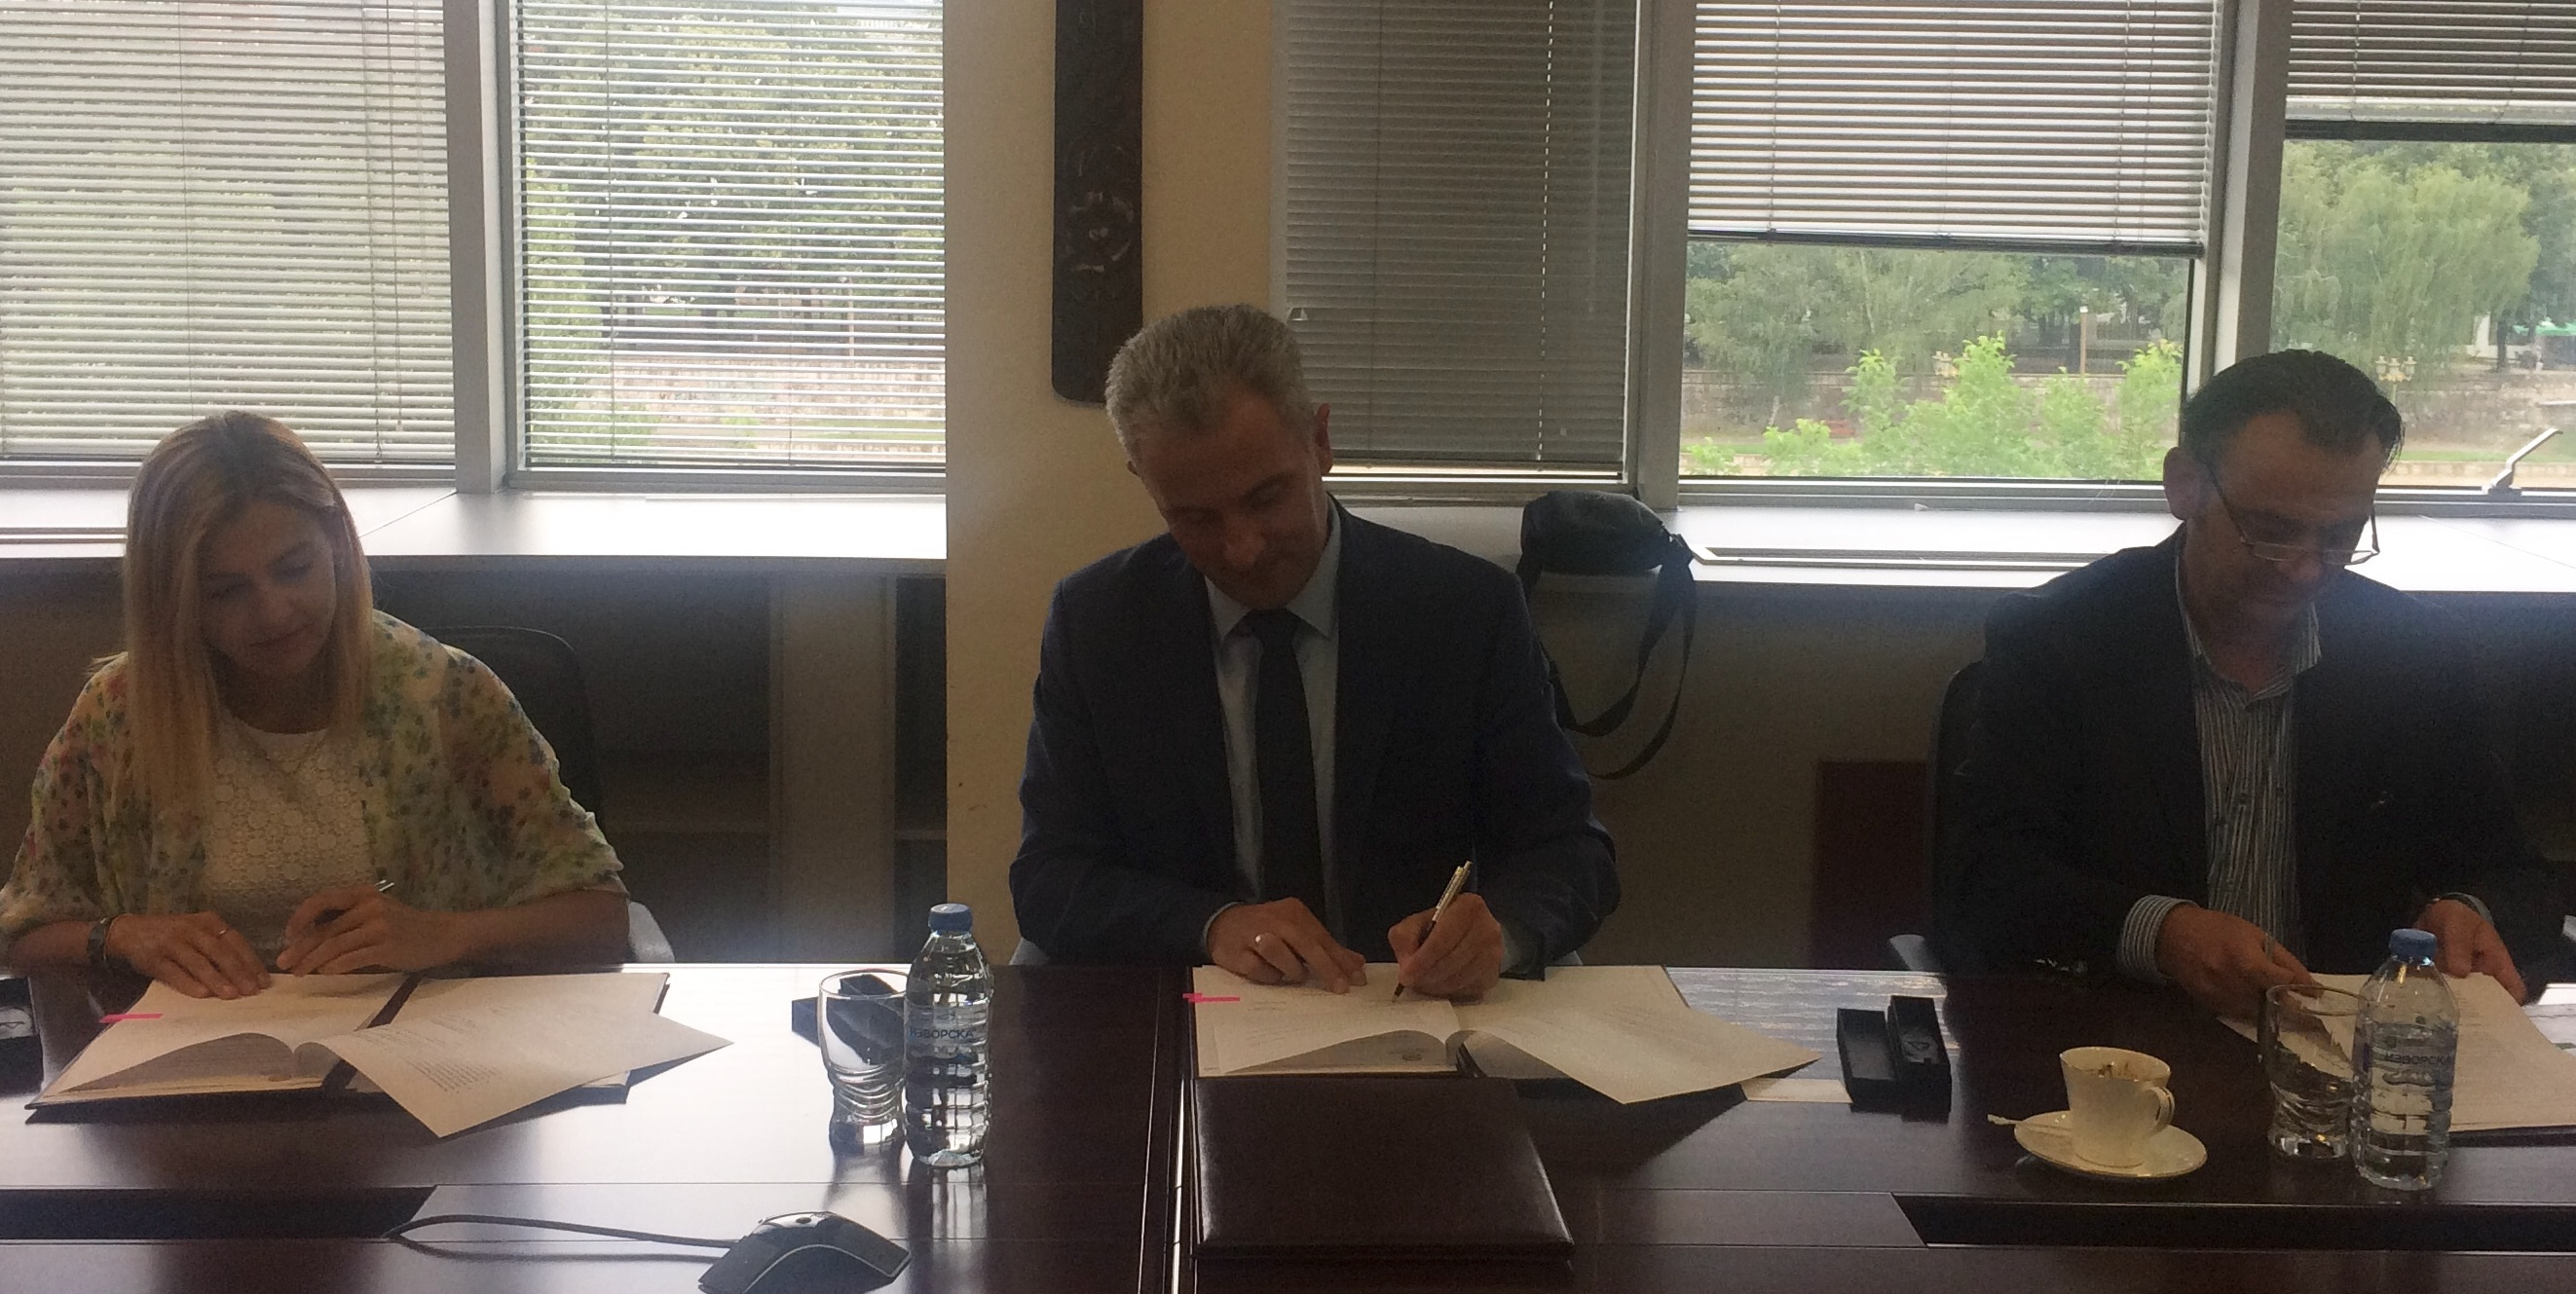 SIGNED MEMORANDA OF COOPERATION WITH THE E-COMMERCE